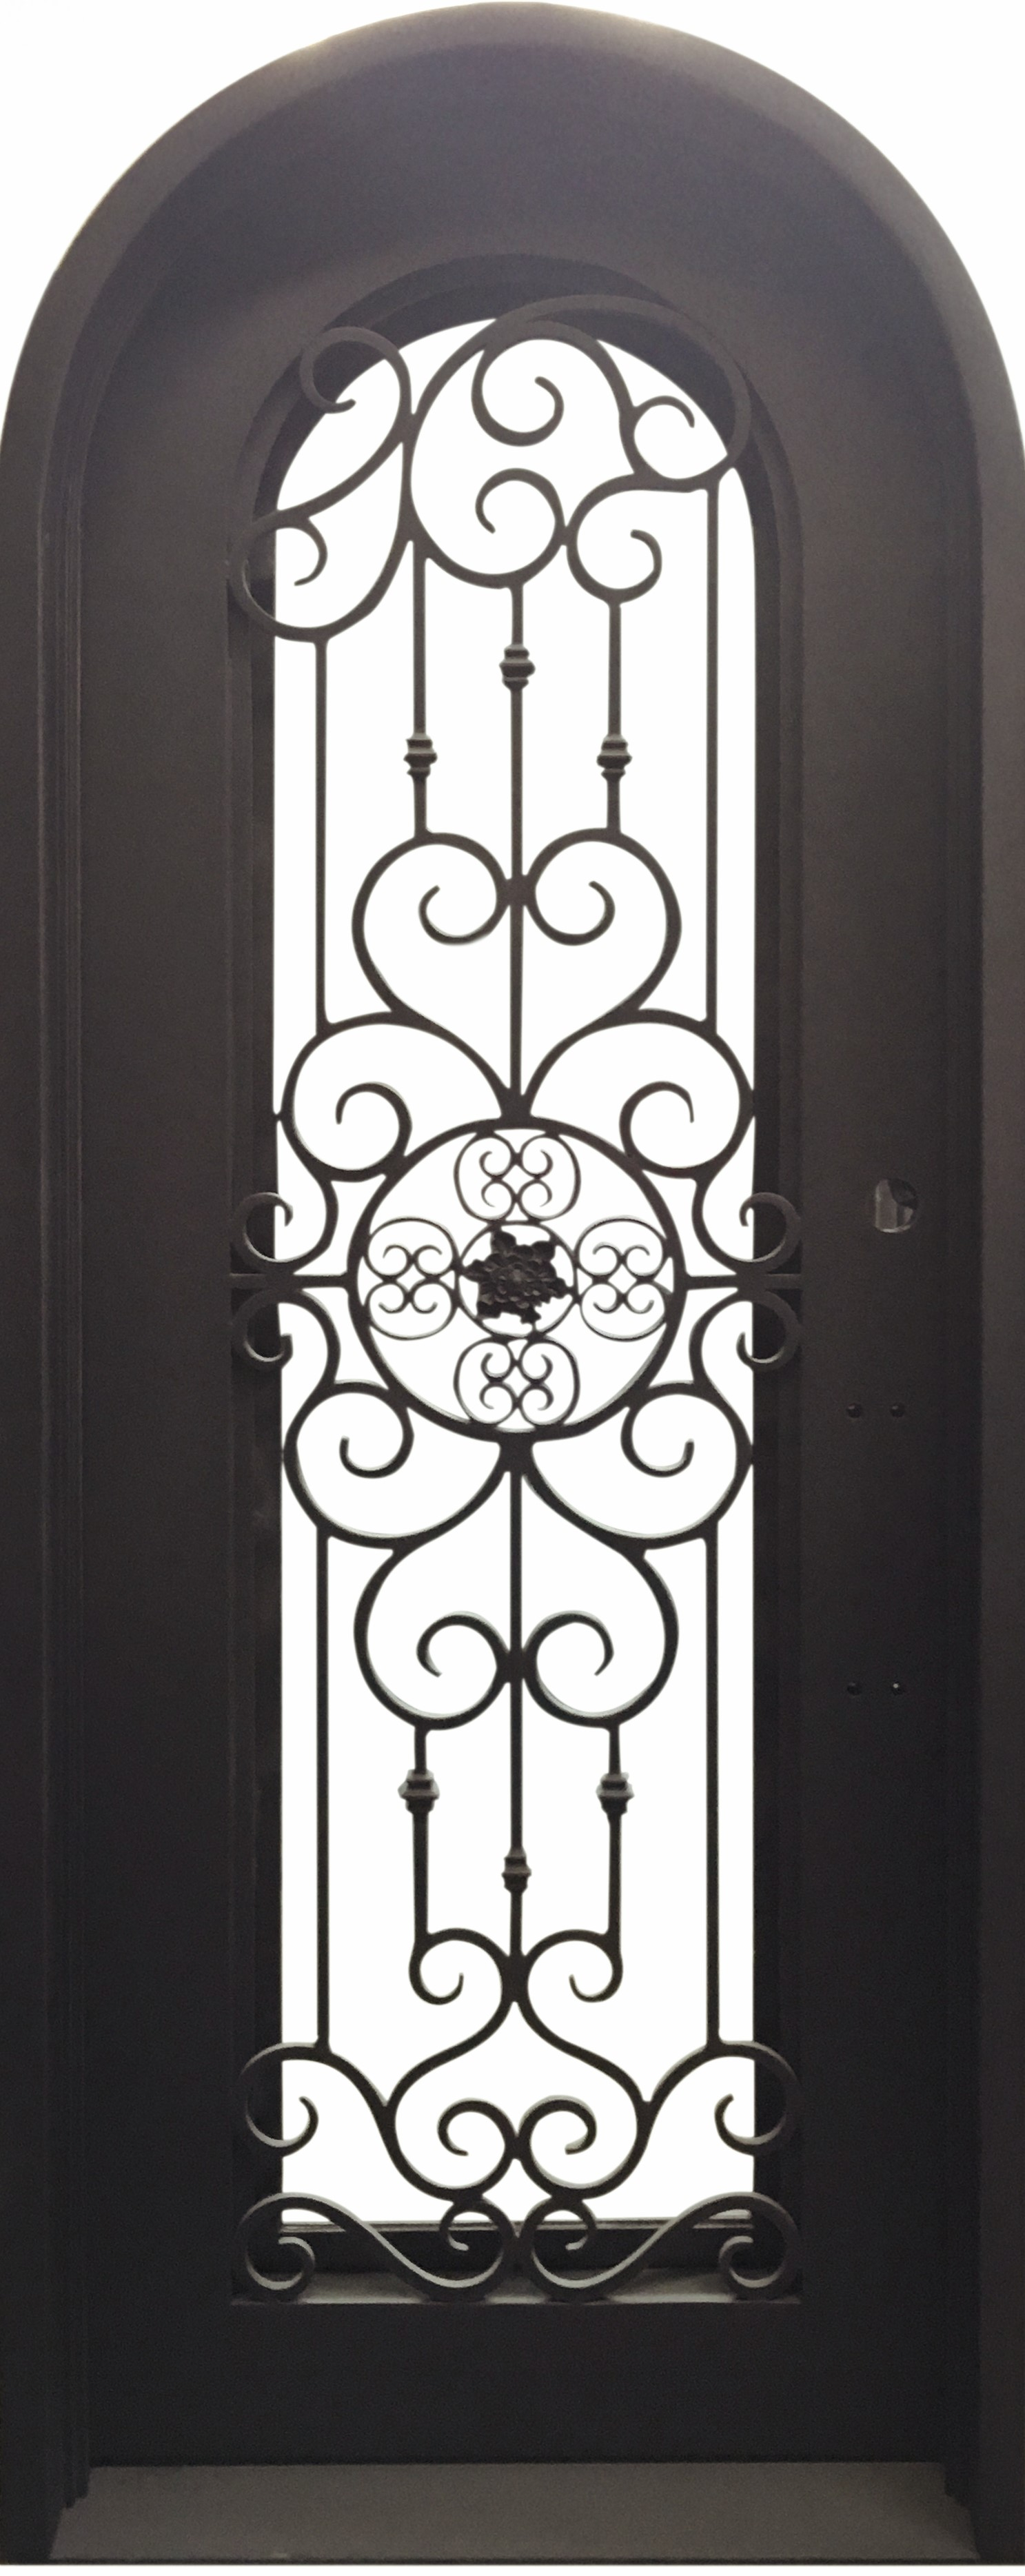 with luxury wrought iron entry doors you can add beauty and value to your home your guests or clients will compliment on your memorable entrance